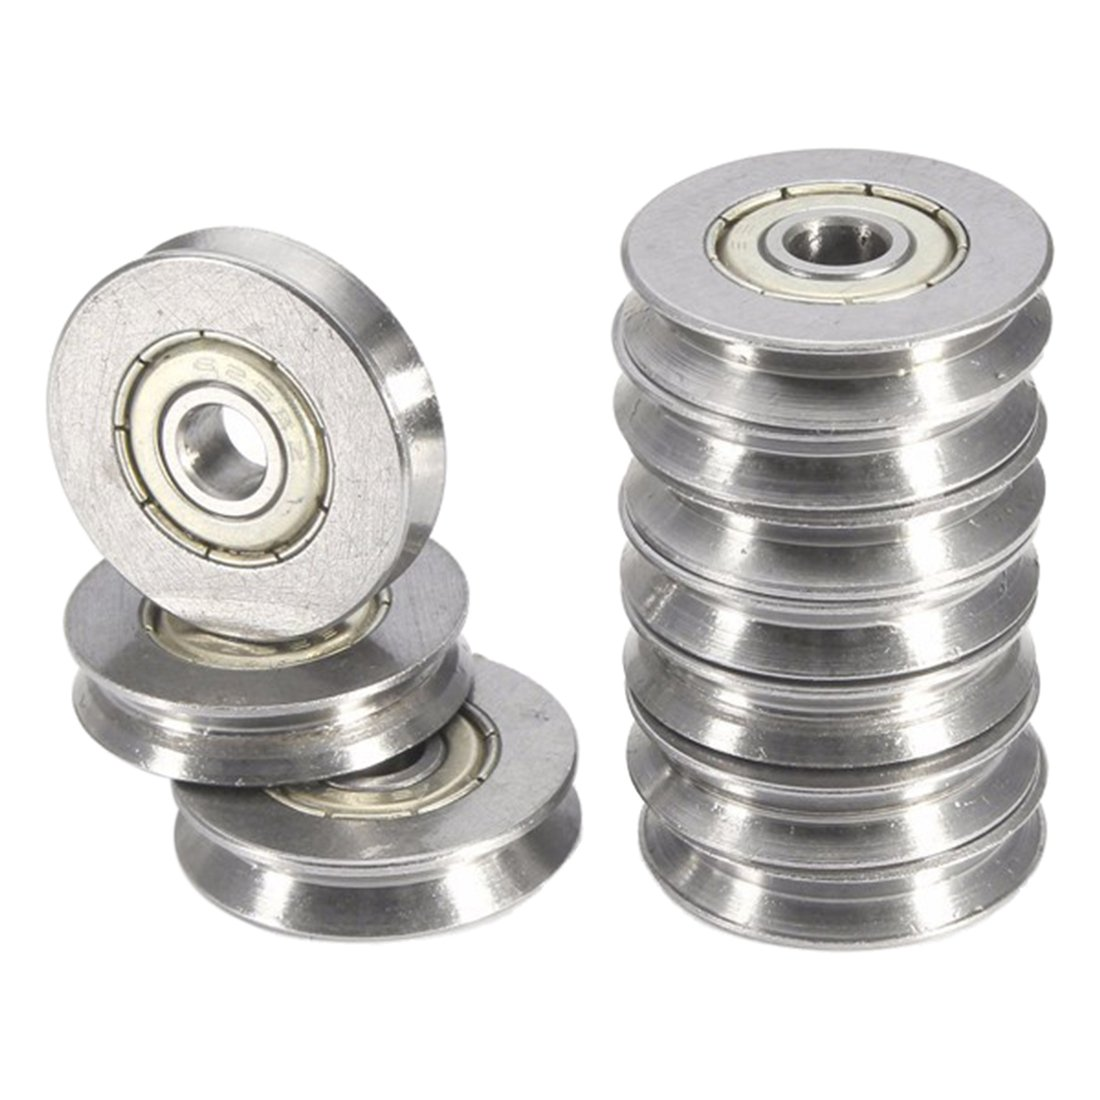 REFURBISHHOUSE 10PCS V625ZZ V Groove Vgroove Metal Sealed Ball Bearings 5X22X5mm Deep 1.5mm